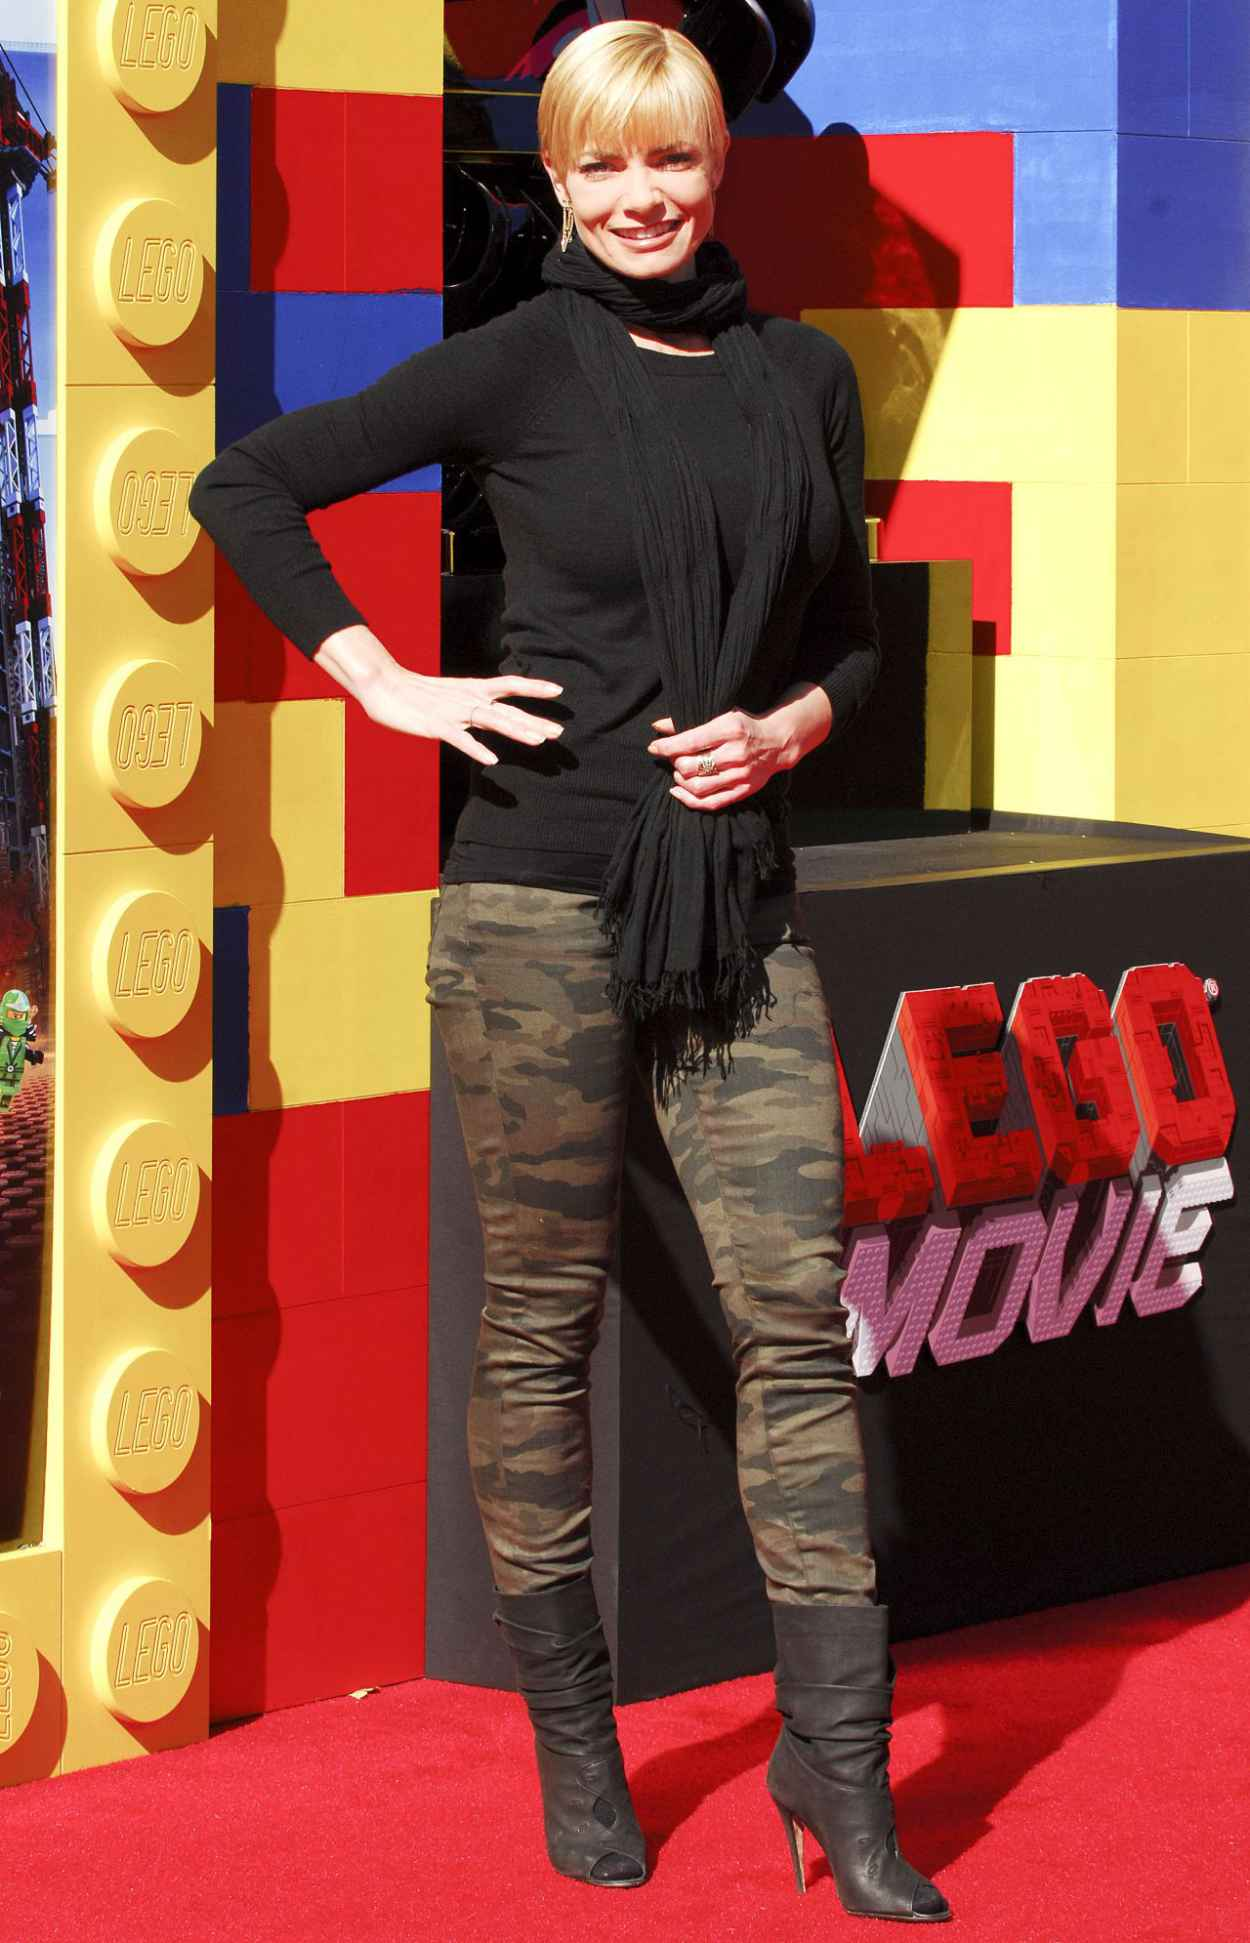 Jaime Pressly on Red Carpet - THE LEGO MOVIE Premiere in Los Angeles-1